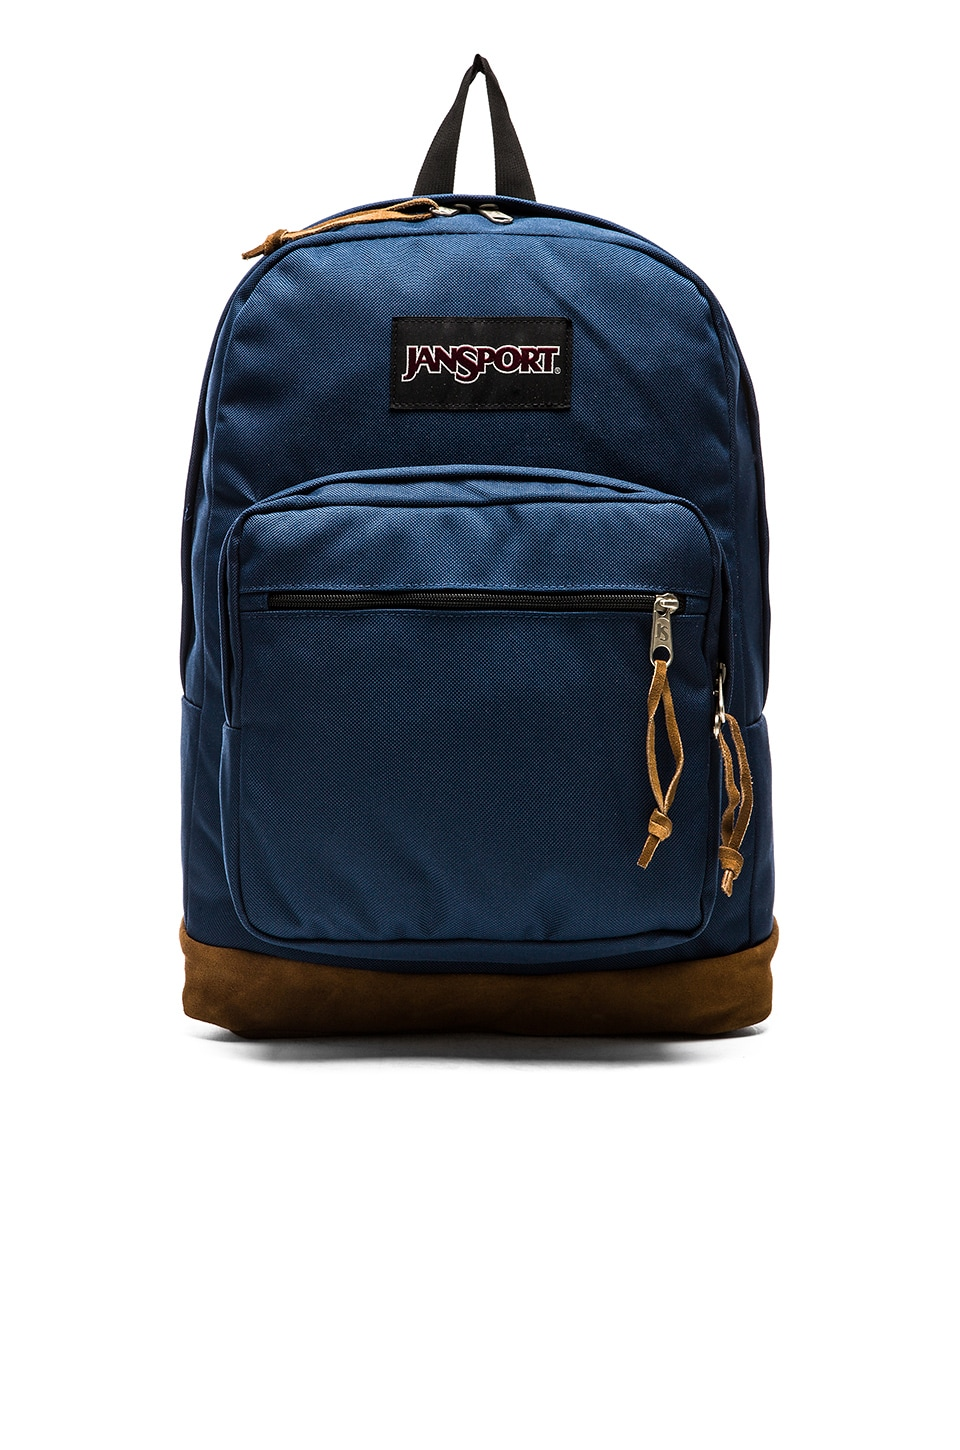 Jansport Right Pack Backpack in Navy